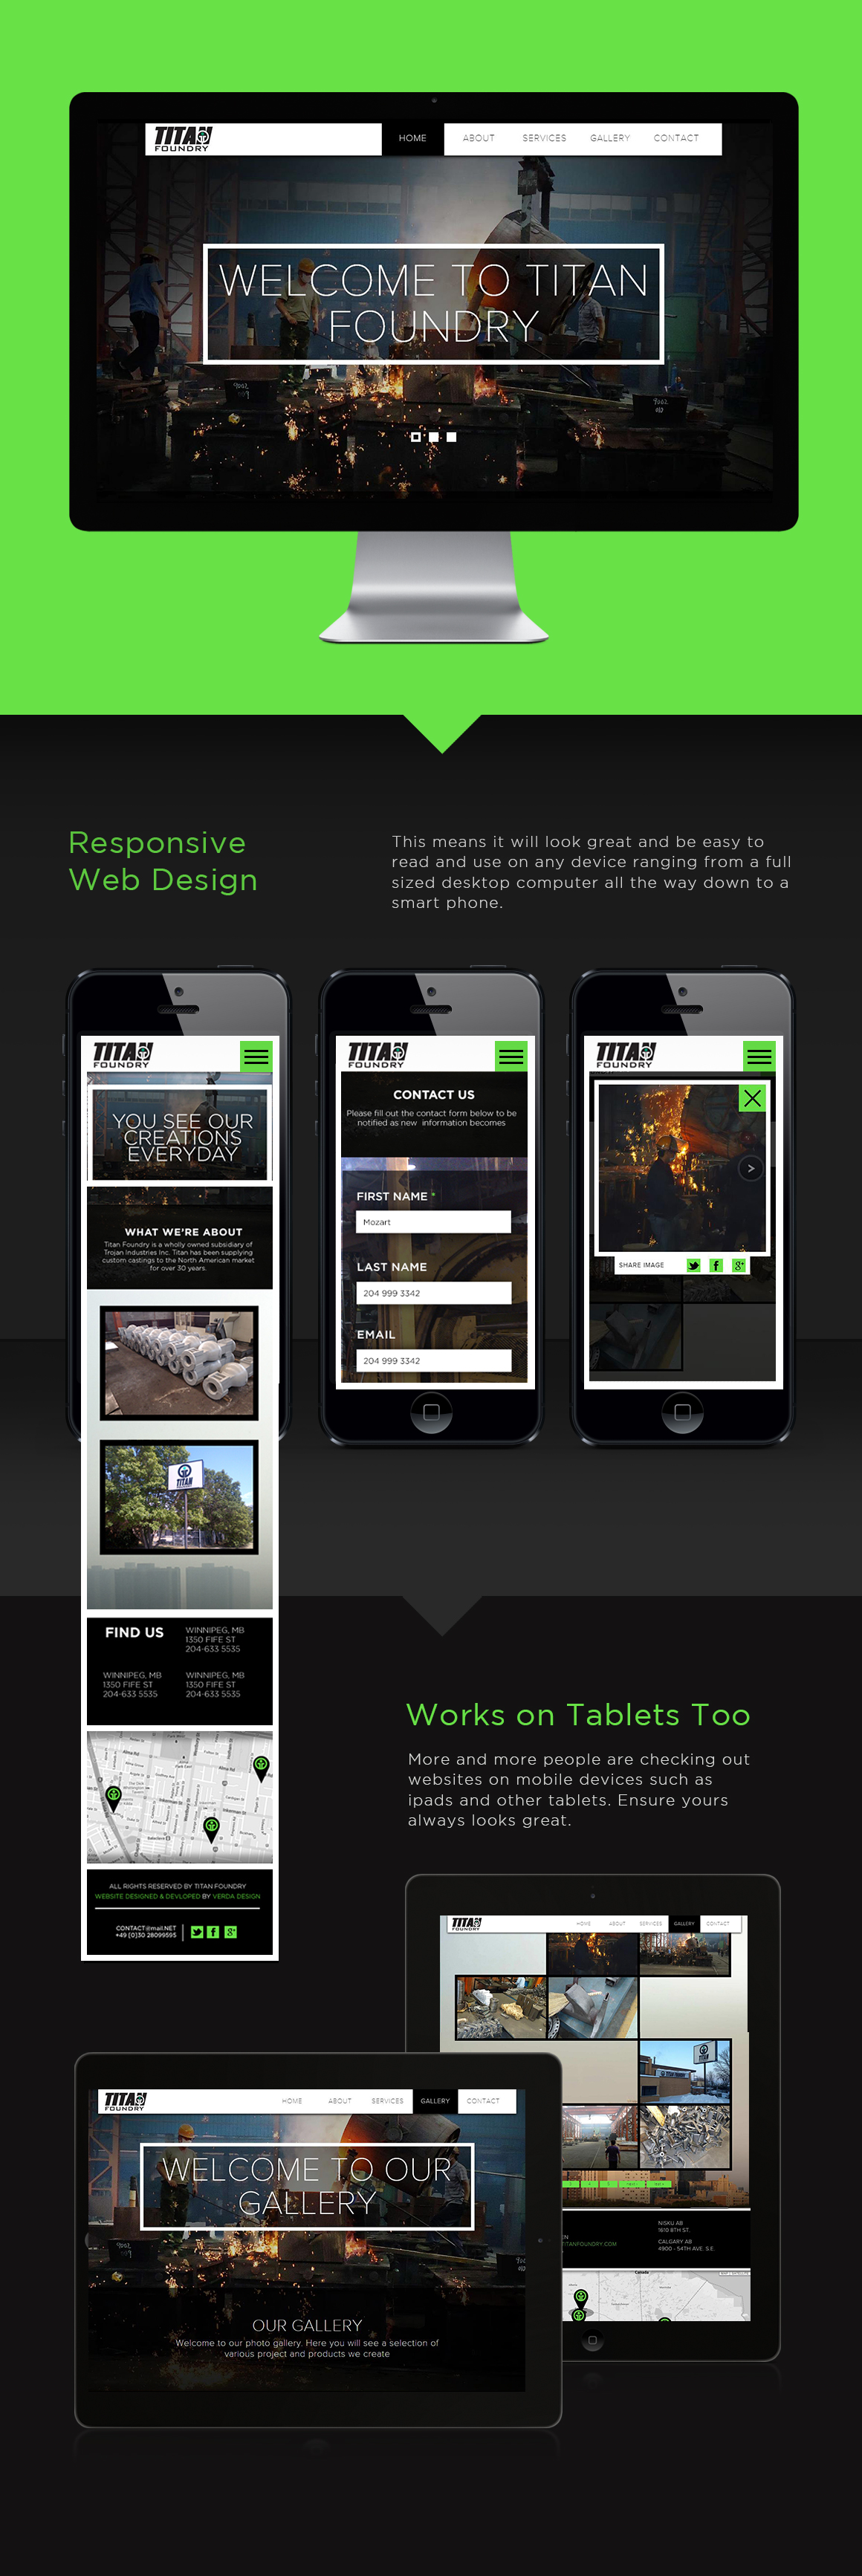 web-design-winnipeg-verda.jpg